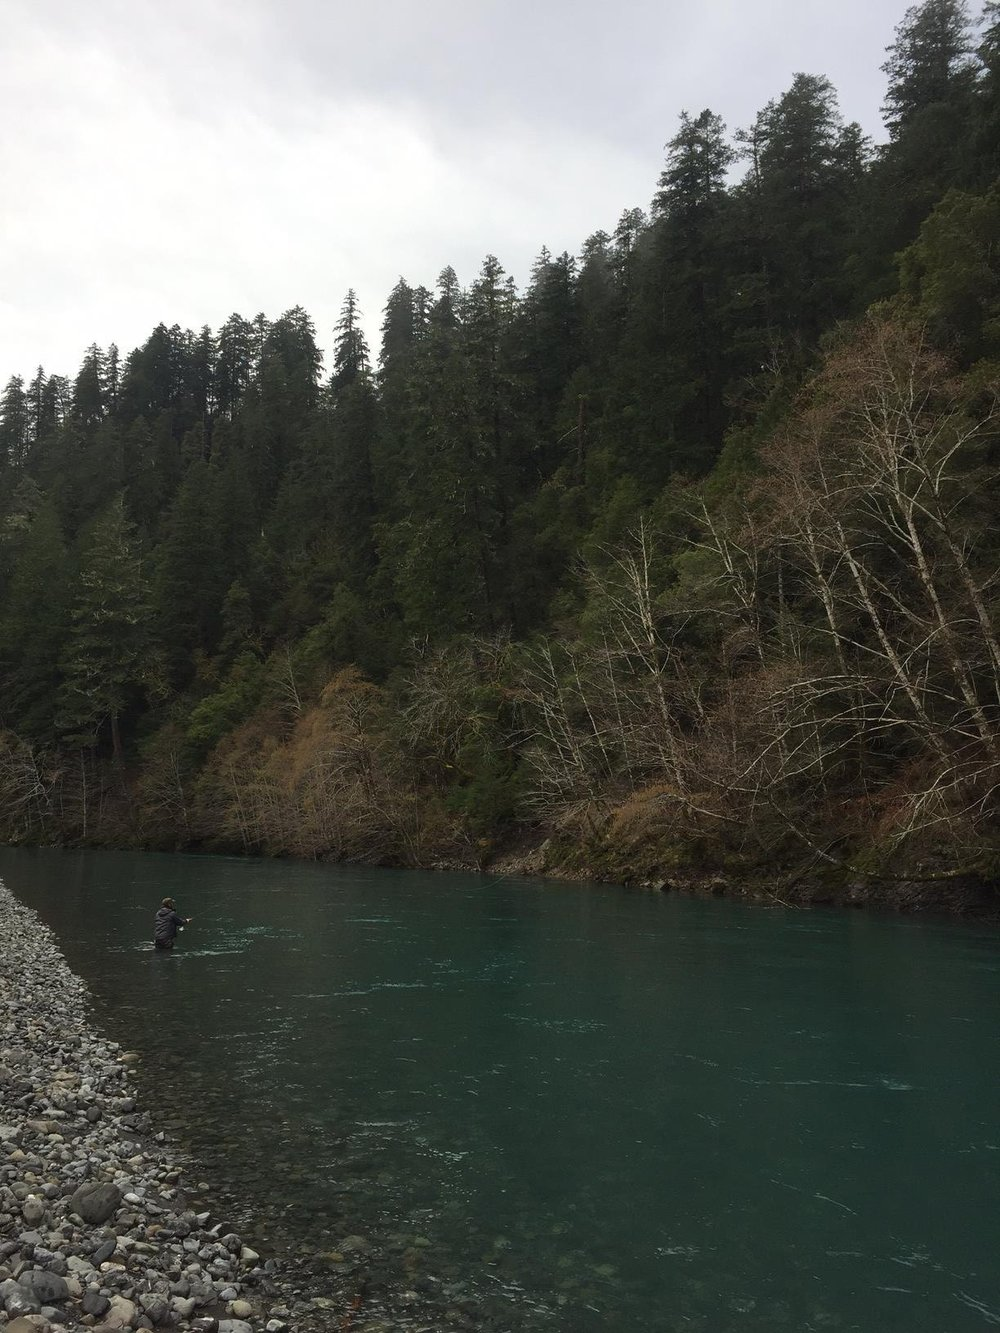 Charles gets some work done on the Chetco River. Photography by Max Salzburg of Sonja K Photography.